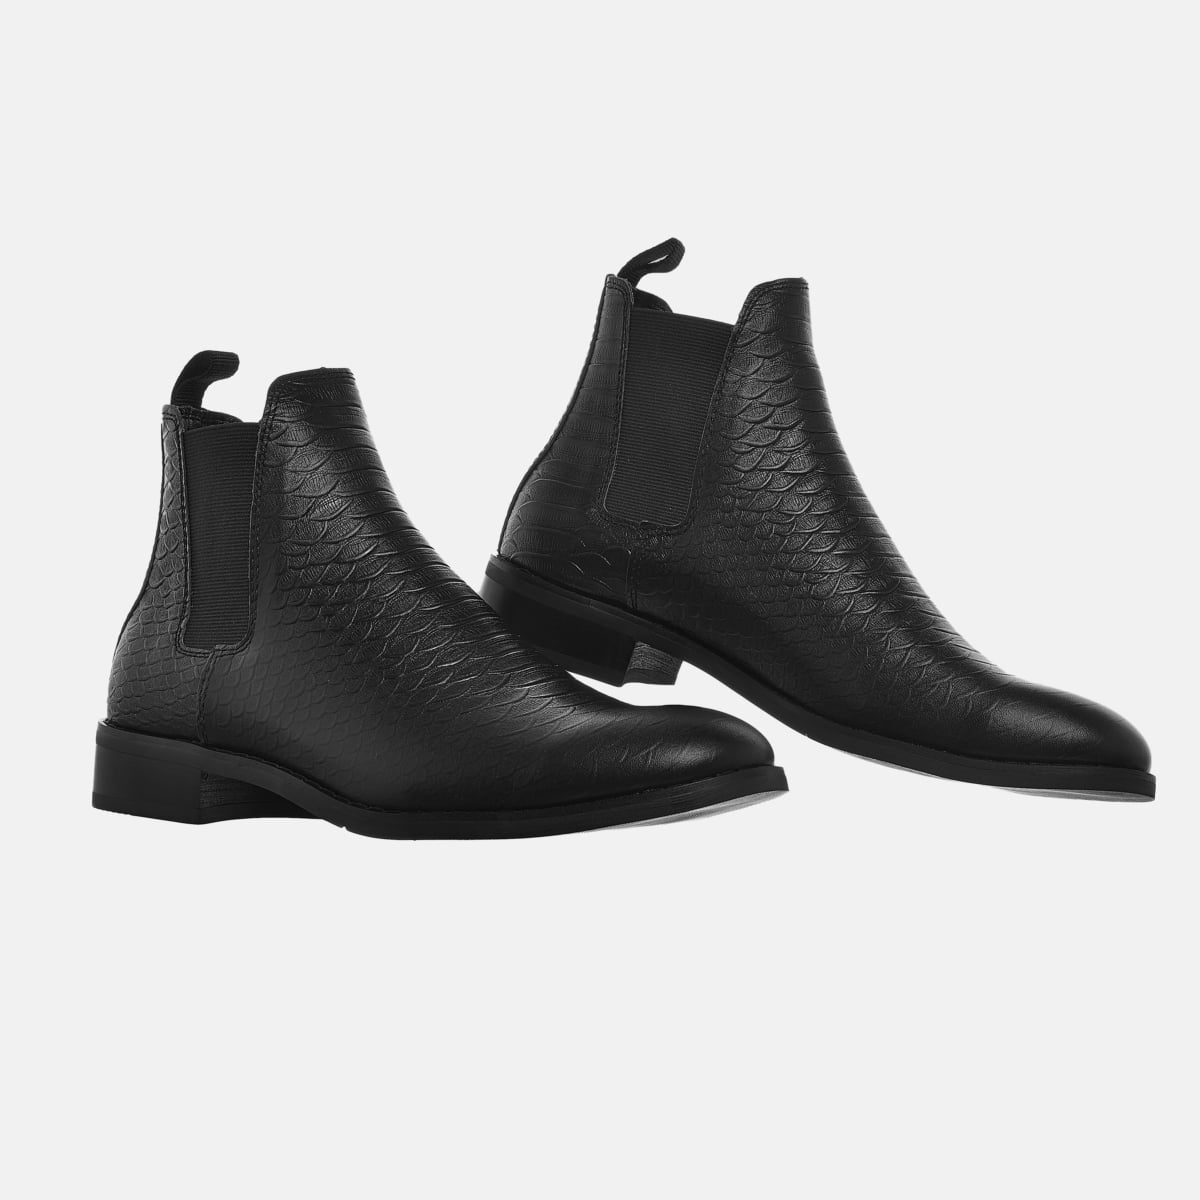 The Wild Chelsea Boots In Black The Wild Chelsea Boots In Black 2